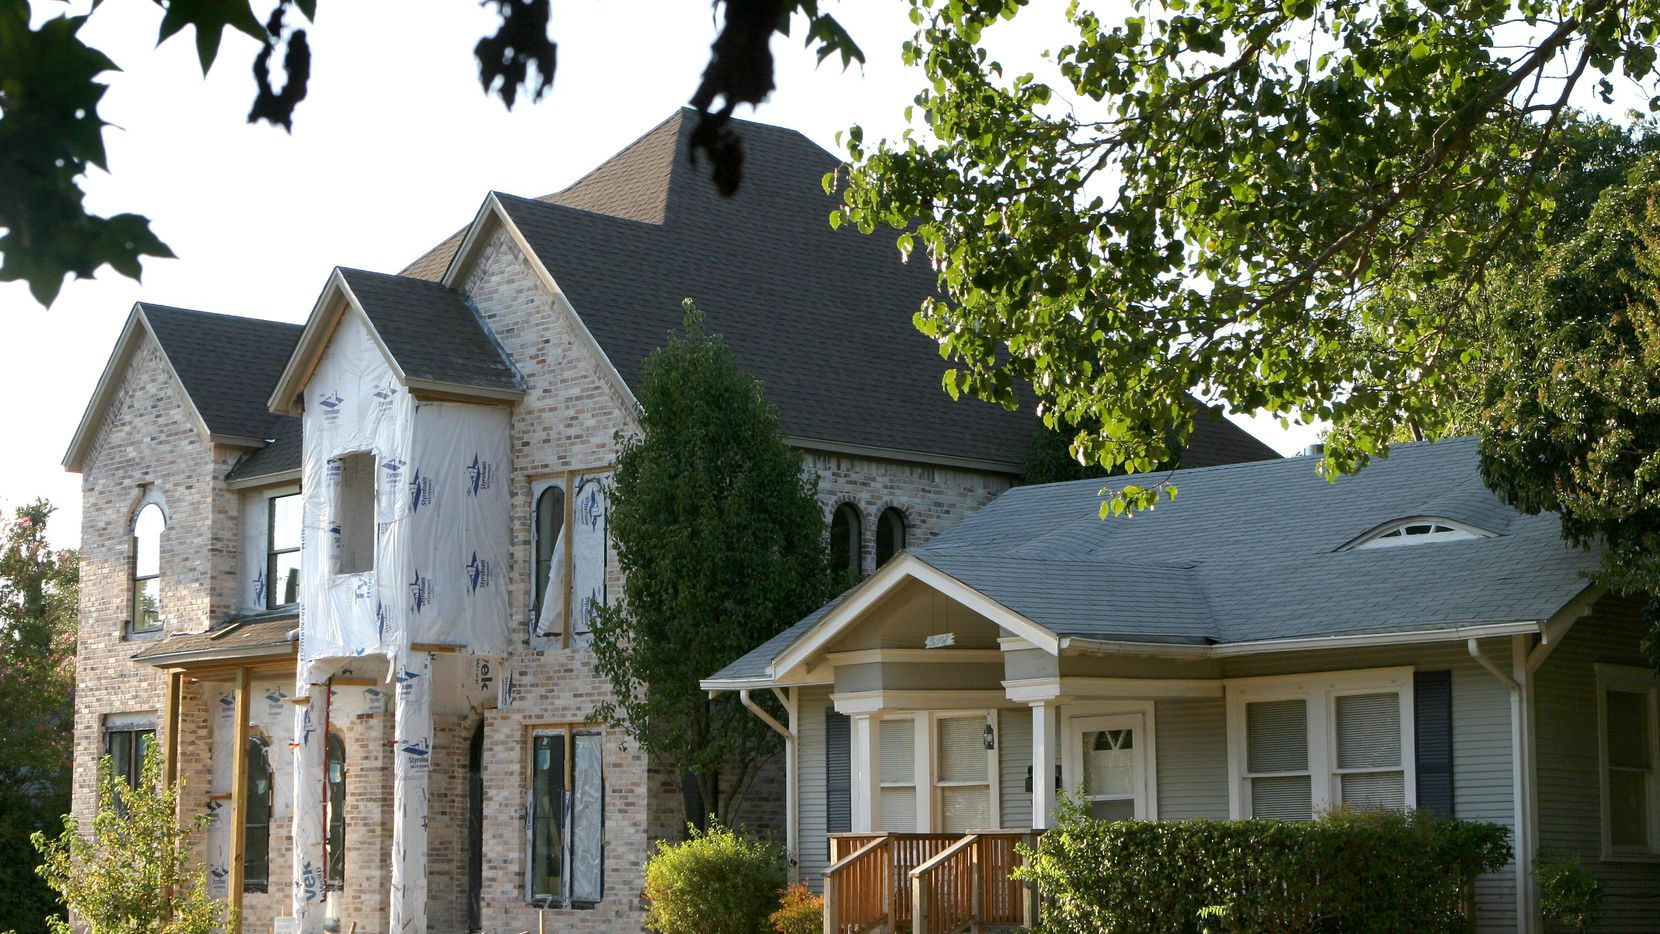 Almost 40 percent of the houses for sale in the Dallas area are more than 3,000 square feet.